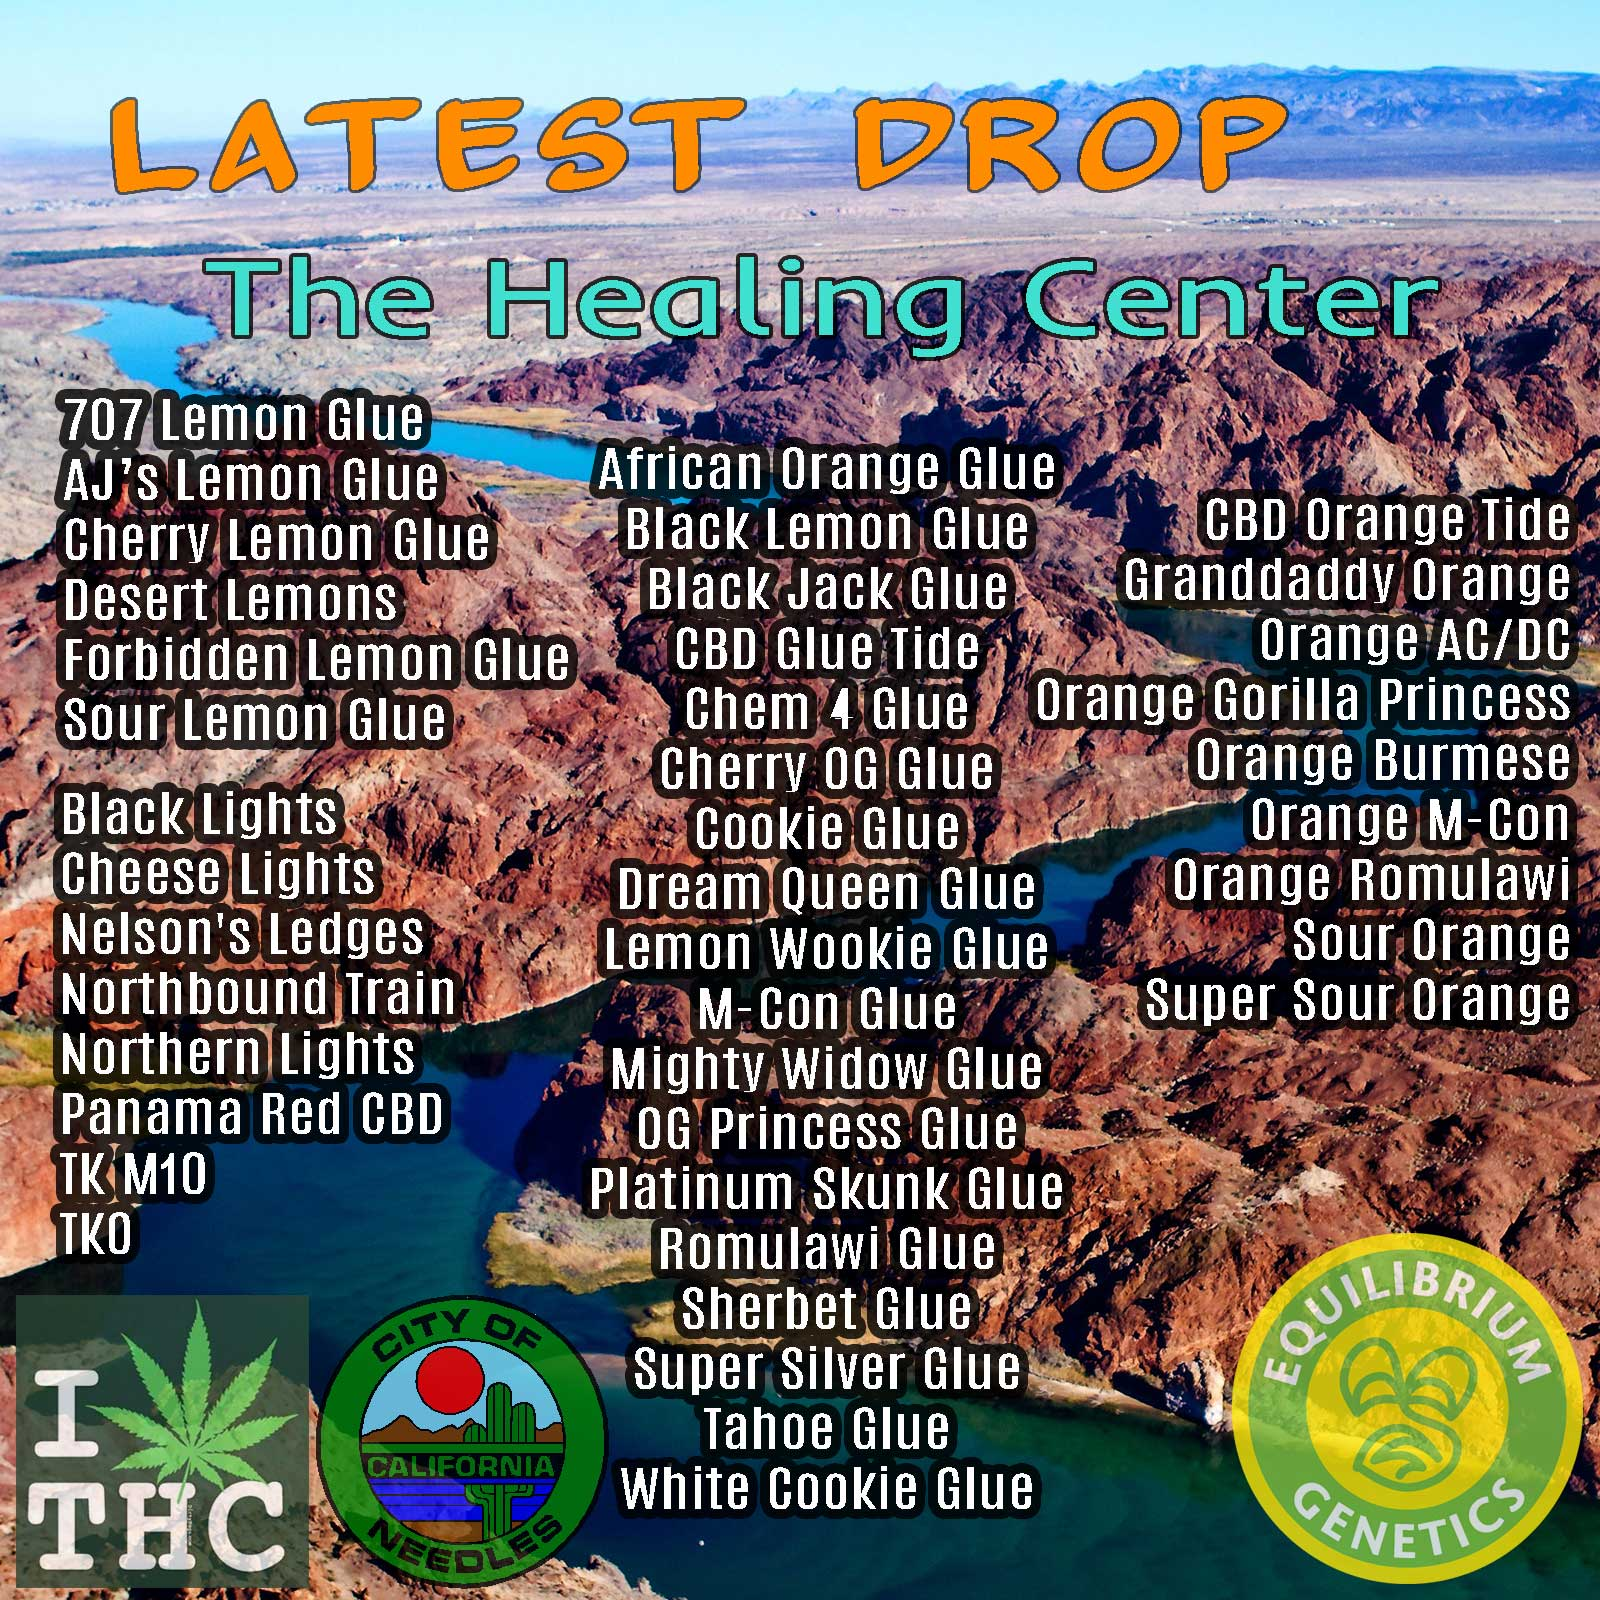 Latest Drop: The Healing Center